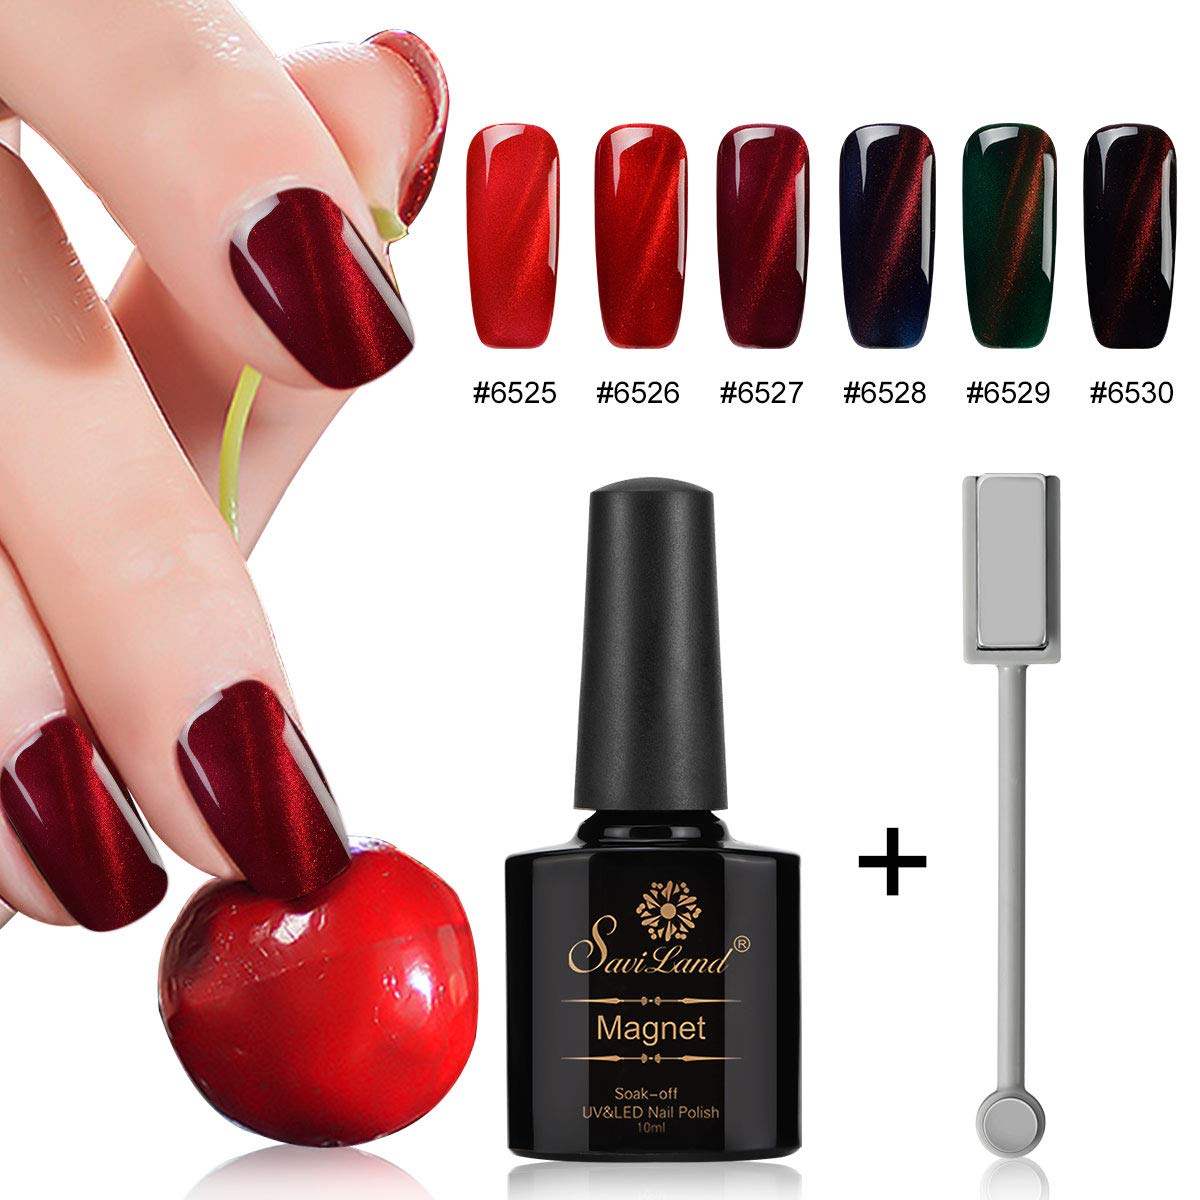 6pcs Red Series Cat Eye Nail Gel Set, Saviland Soak Off UV/LED Magnetic Nail Polish Nail Art Manicure Kit 10ml+ +Free Magnet Stick